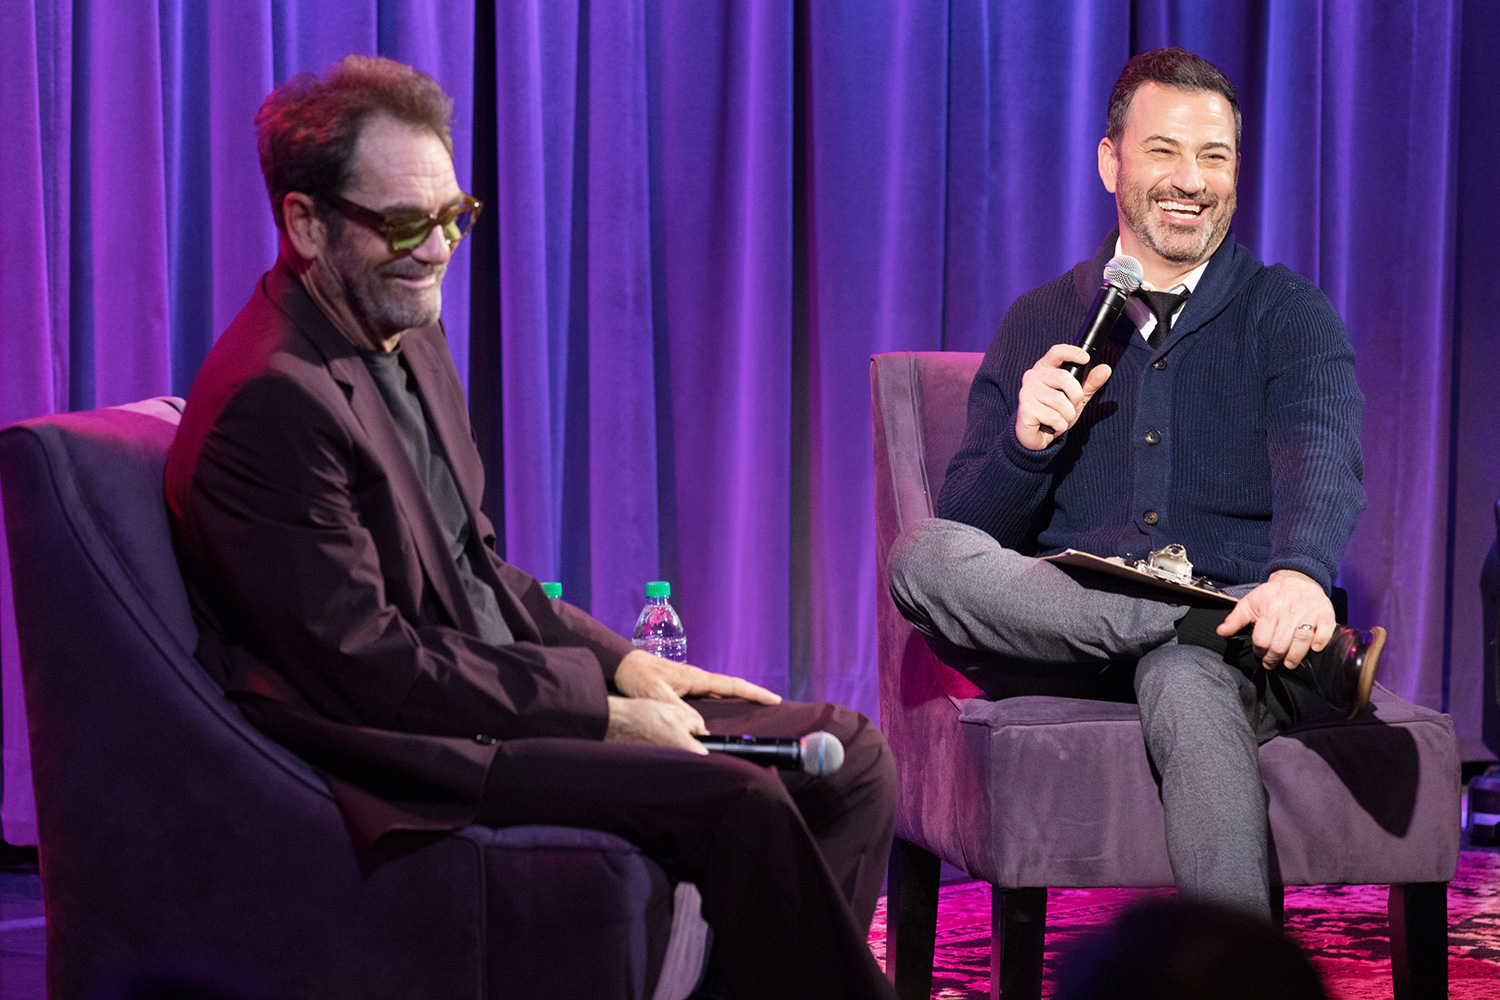 Huey Lewis and Jimmy Kimmel speak onstage during A Conversation With Huey Lewis at The GRAMMY Museum on February 12, 2020 in Los Angeles, California